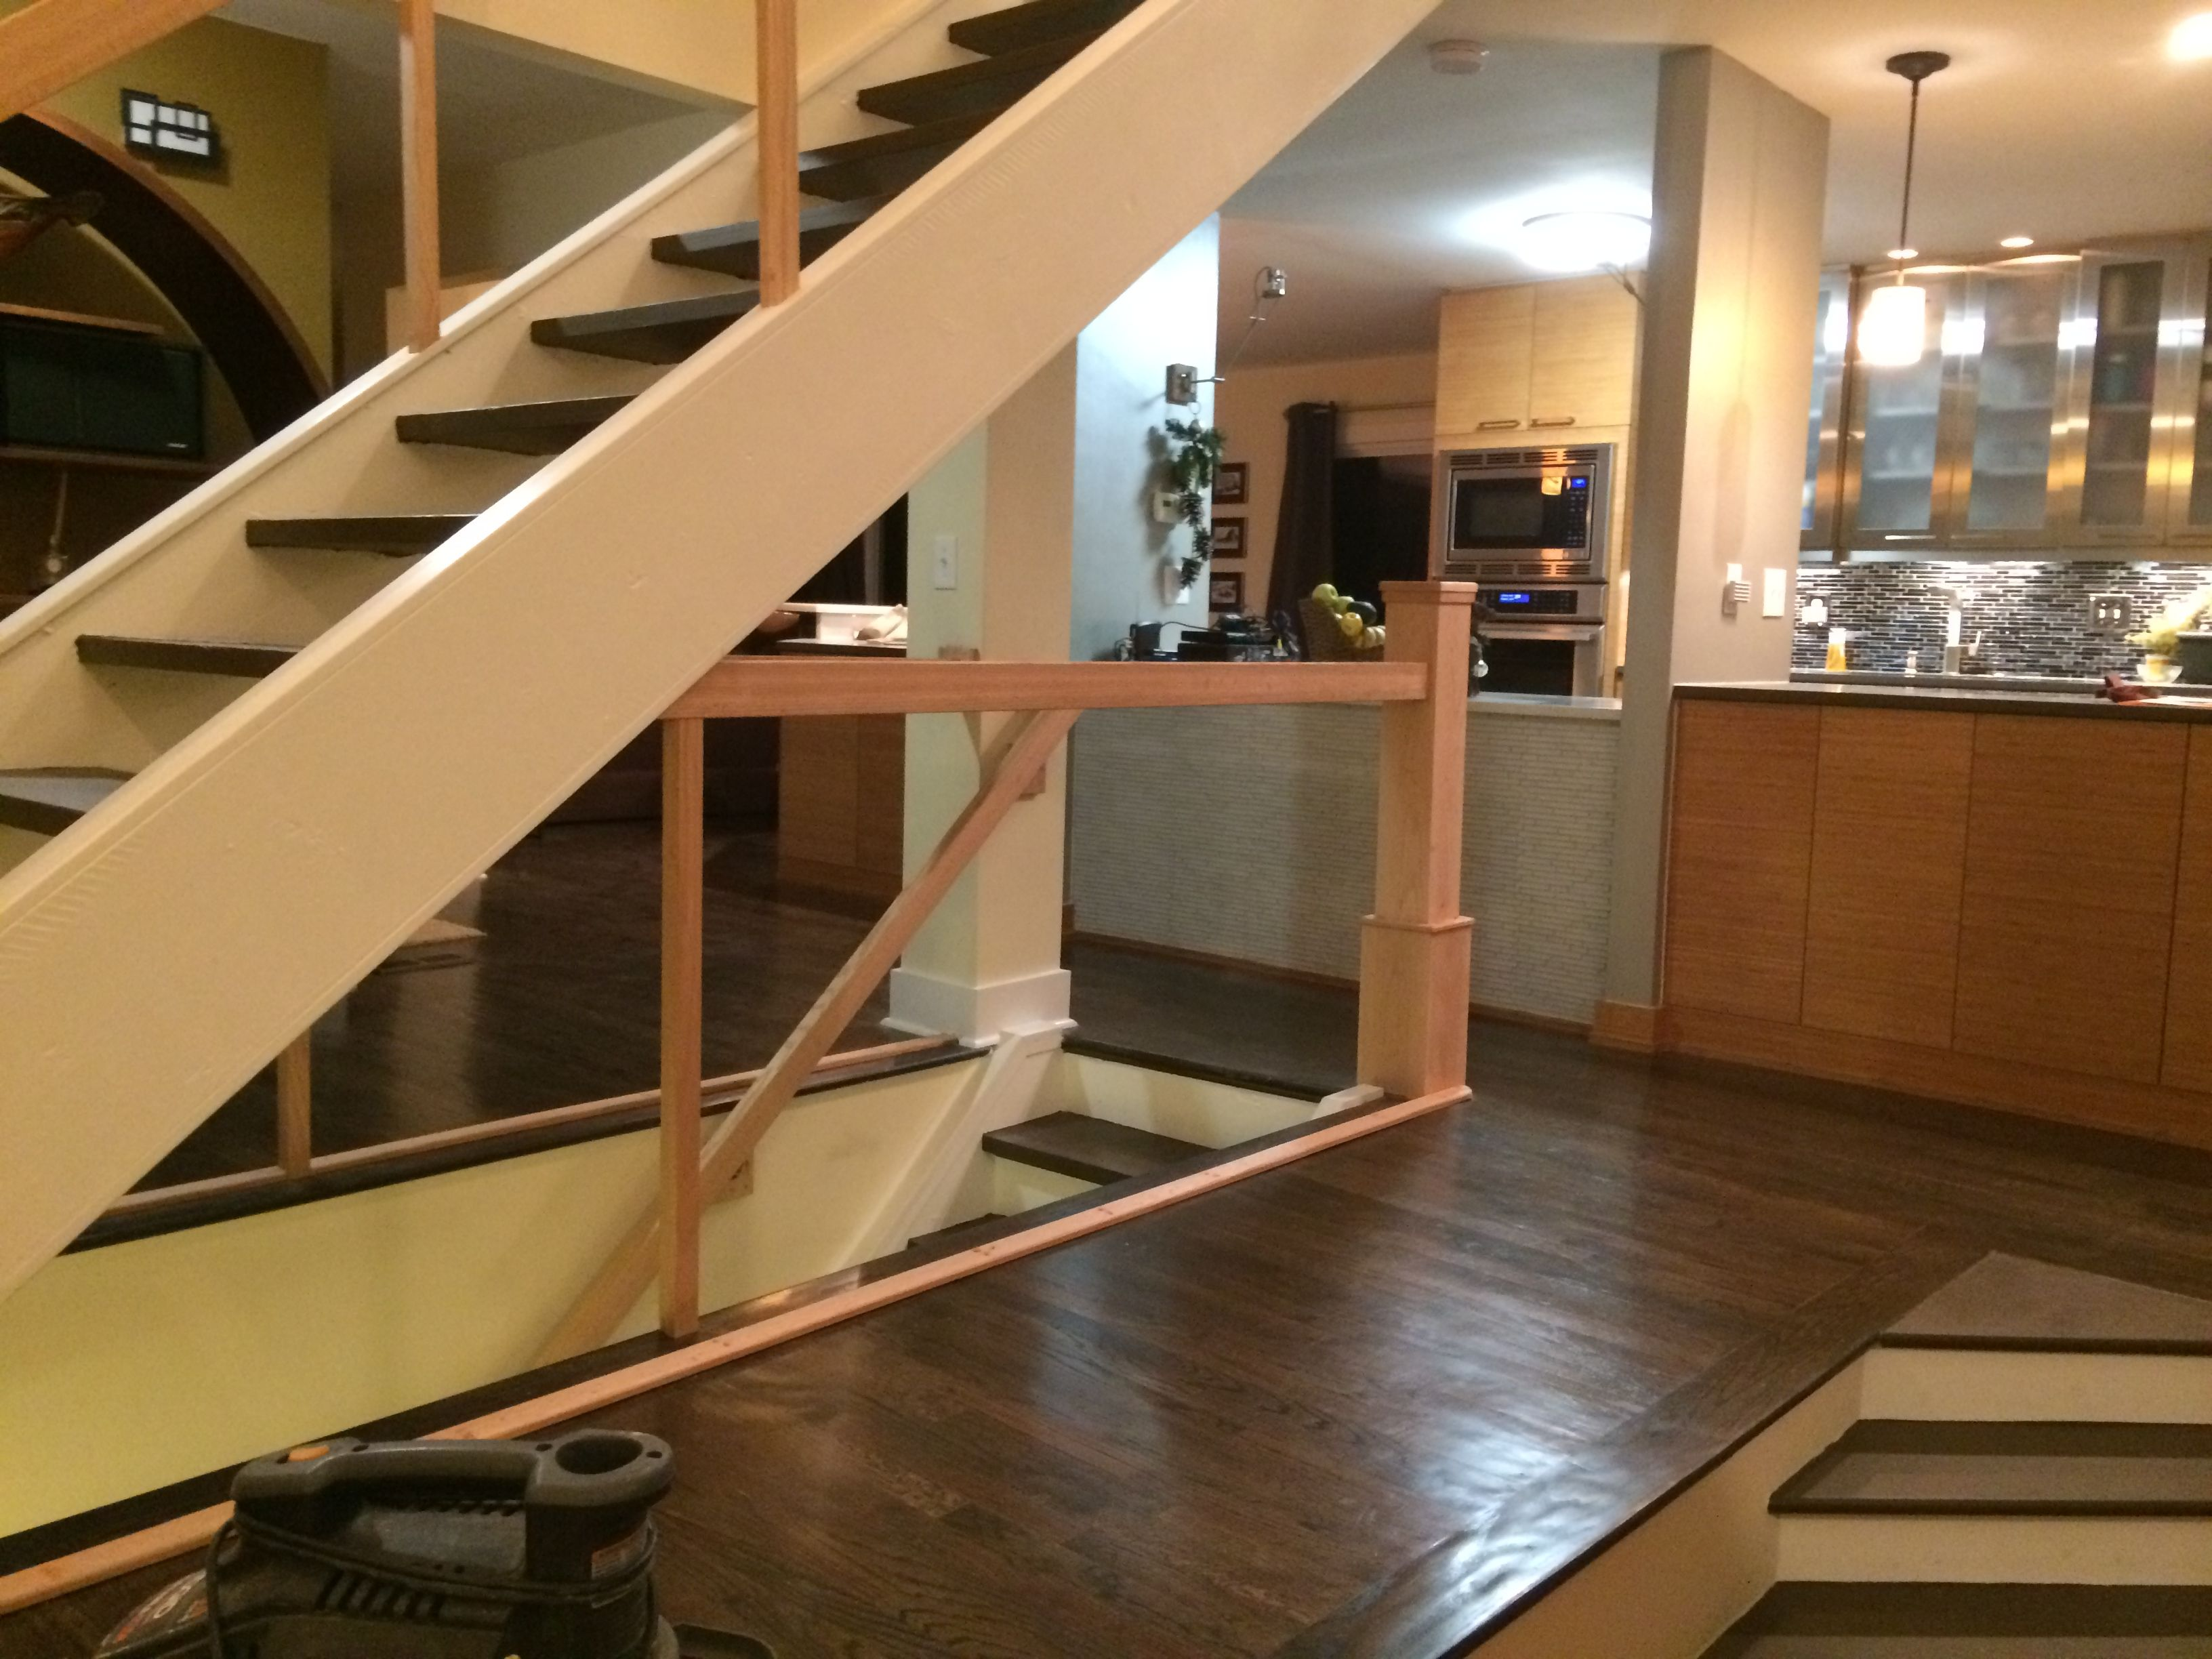 Staircase Upgrade By M.C. Staircase U0026 Trim. Removal Of Tube Balusters And  Installation Of Cable